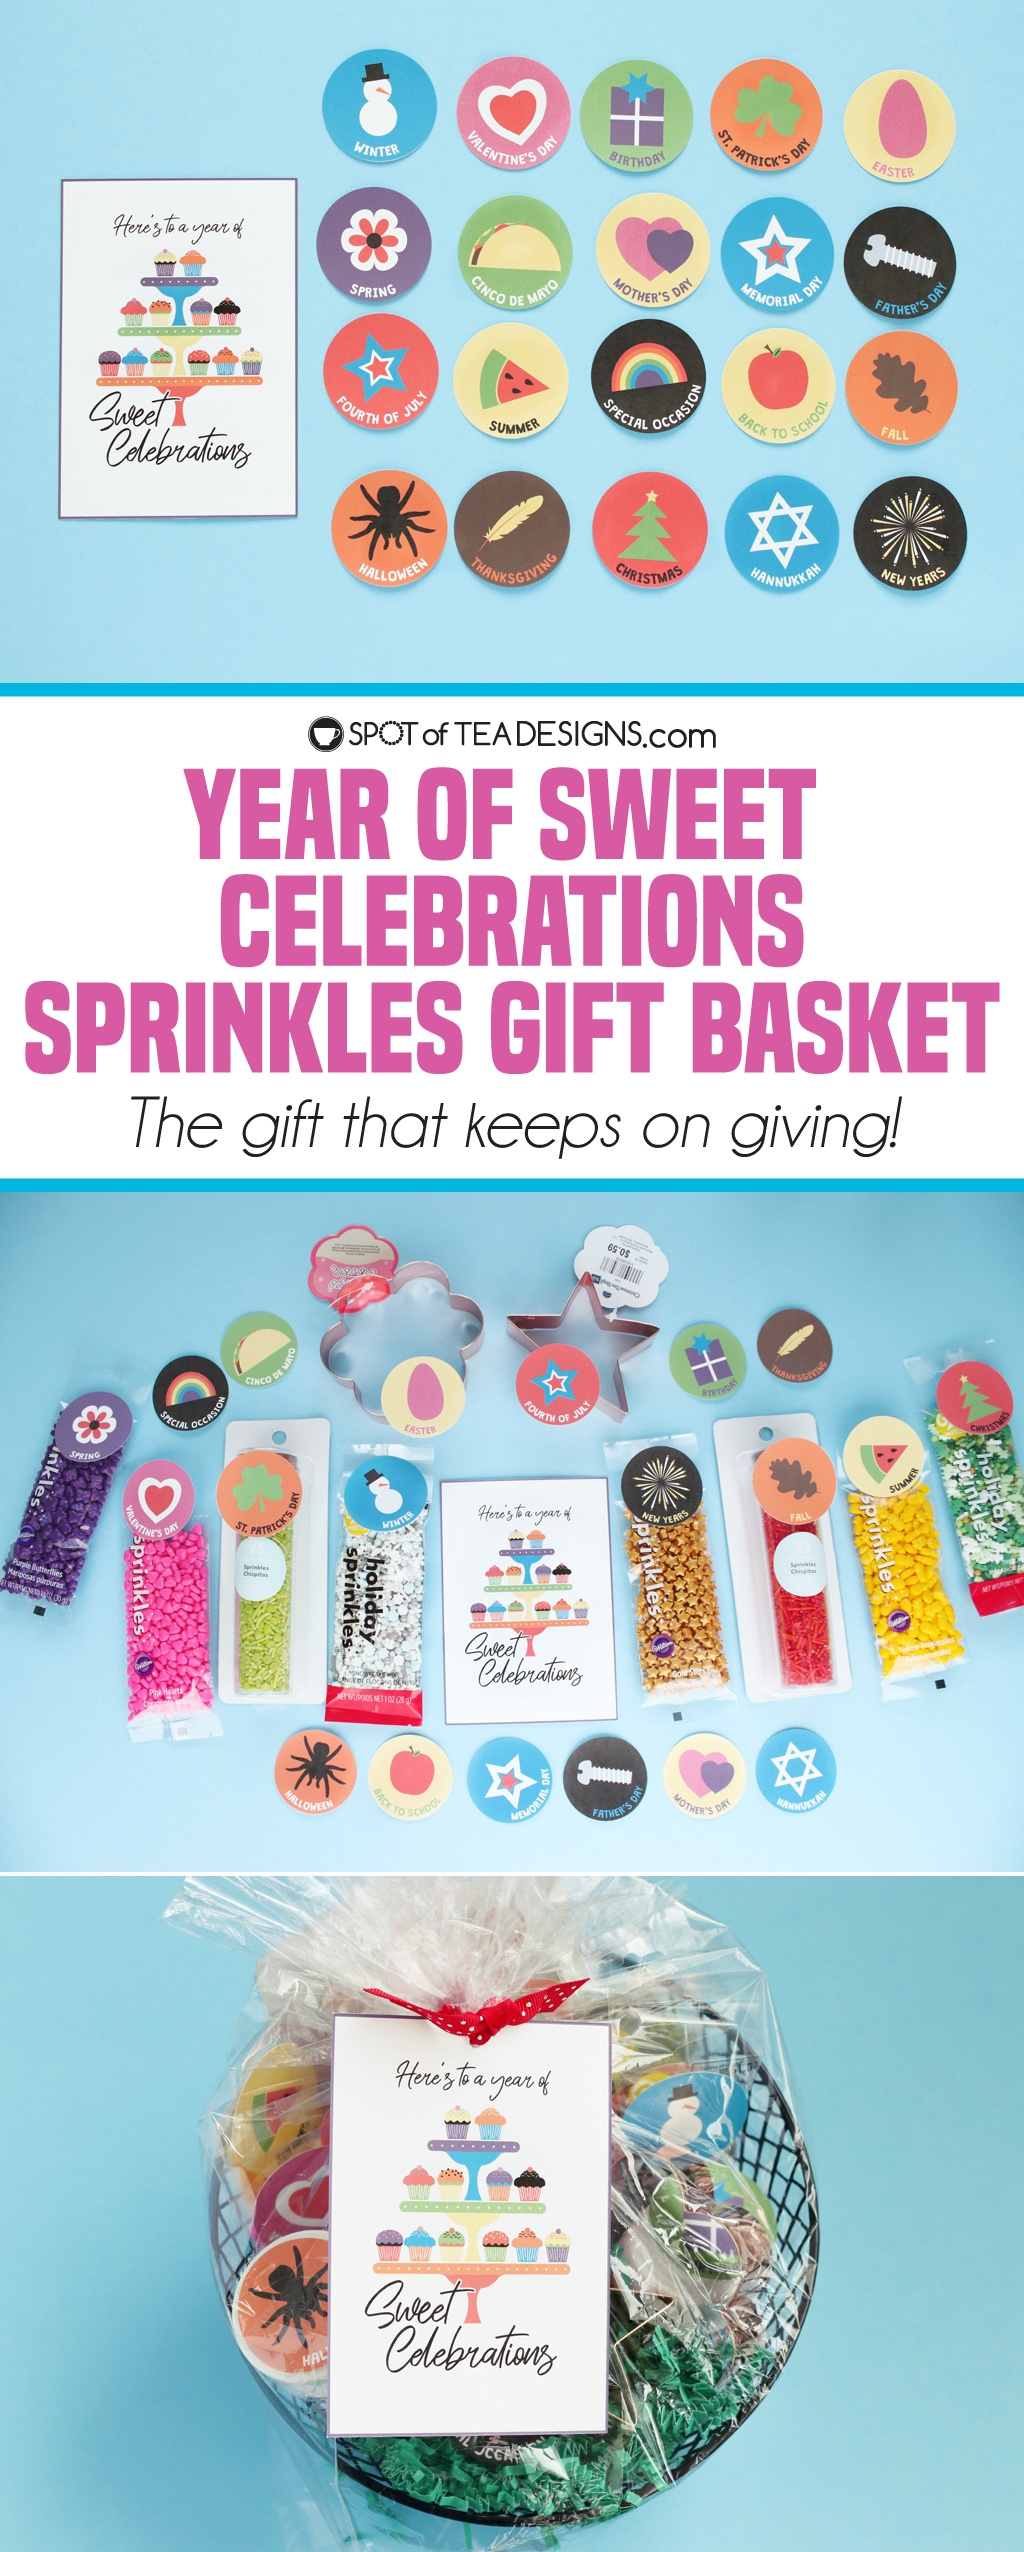 Year Of Celebrations Baking Gift Basket Printables Spot Of Tea Designs